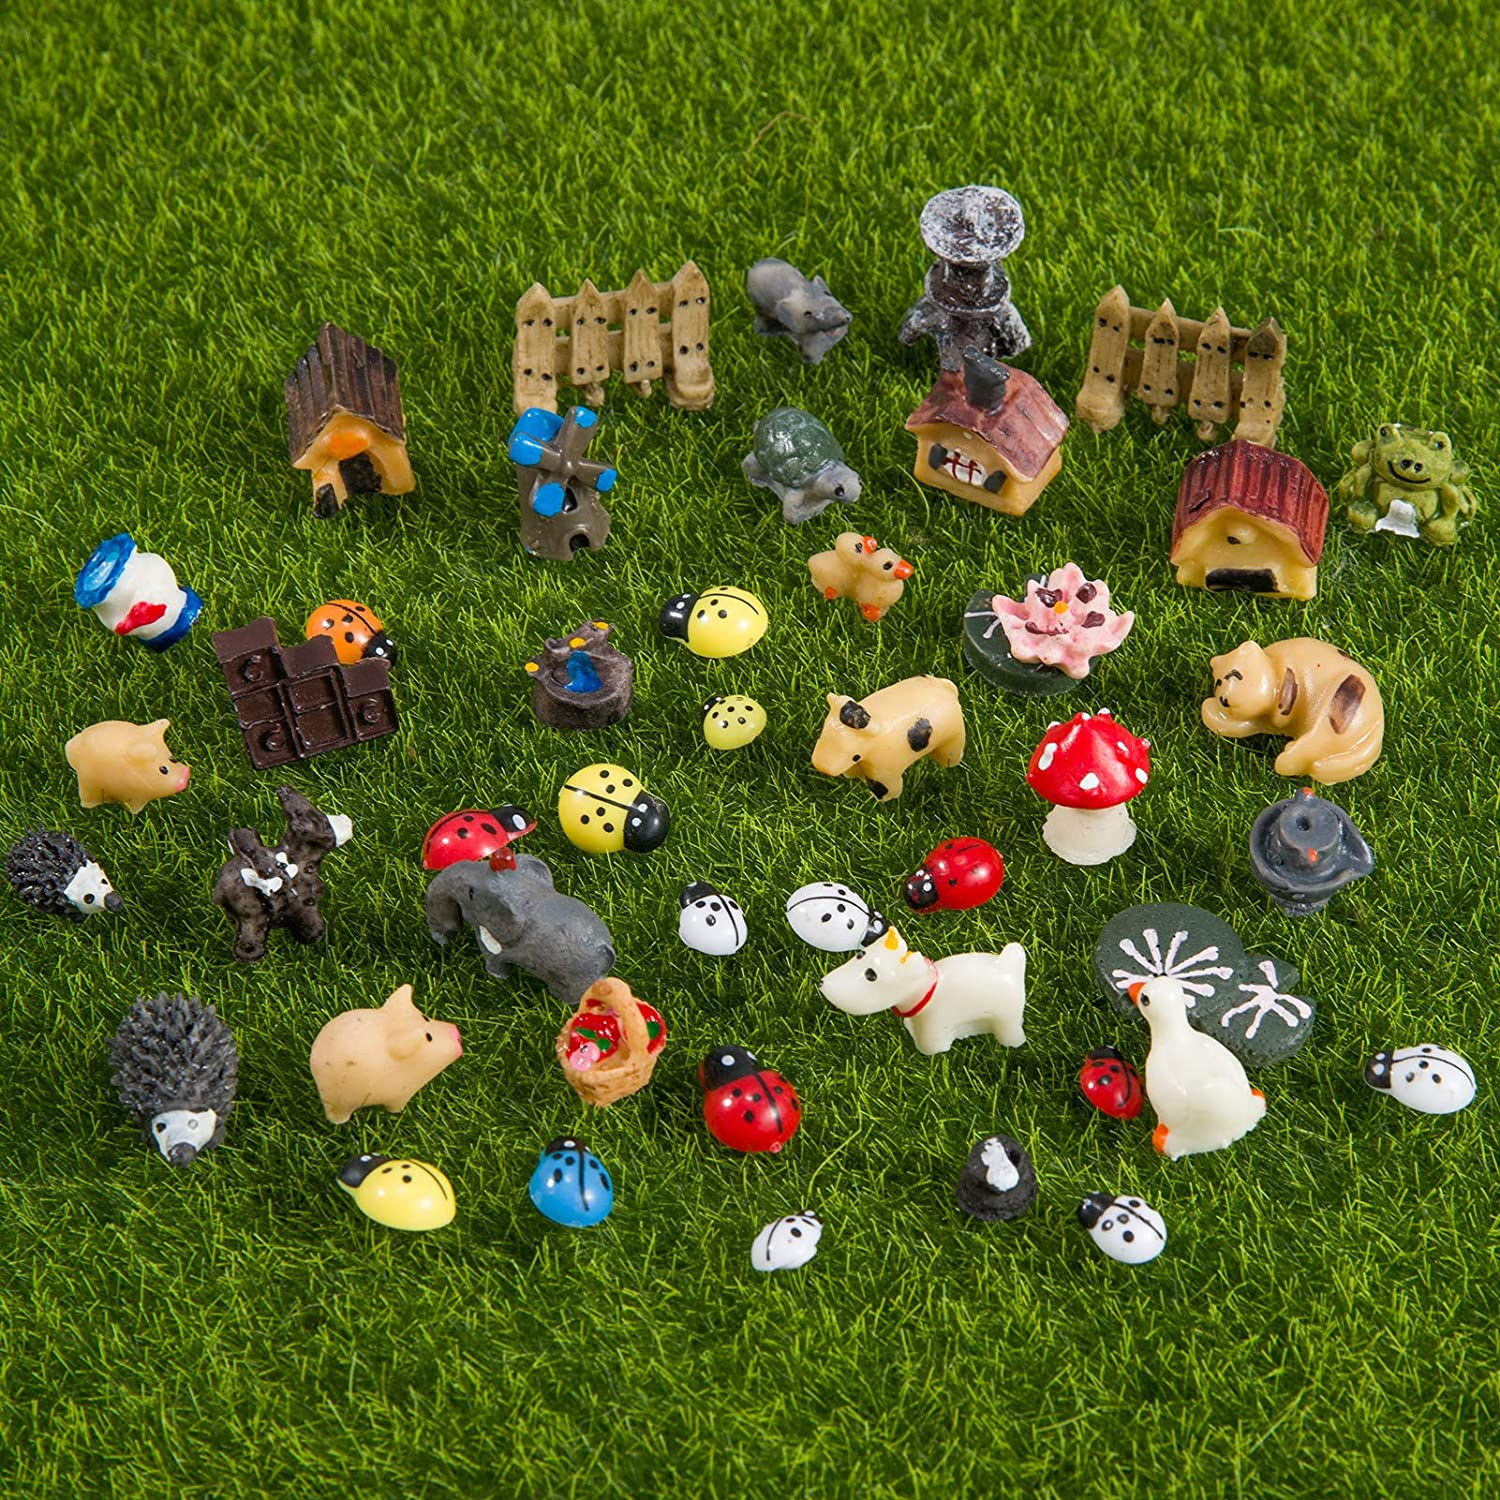 45pcs Mini Animals Miniature Ornament Kits- Resin Animal Themed Miniature Micro Landscape Accessories in 11 Series DIY Handmade Crafting Supplies for Miniature Garden Decorations